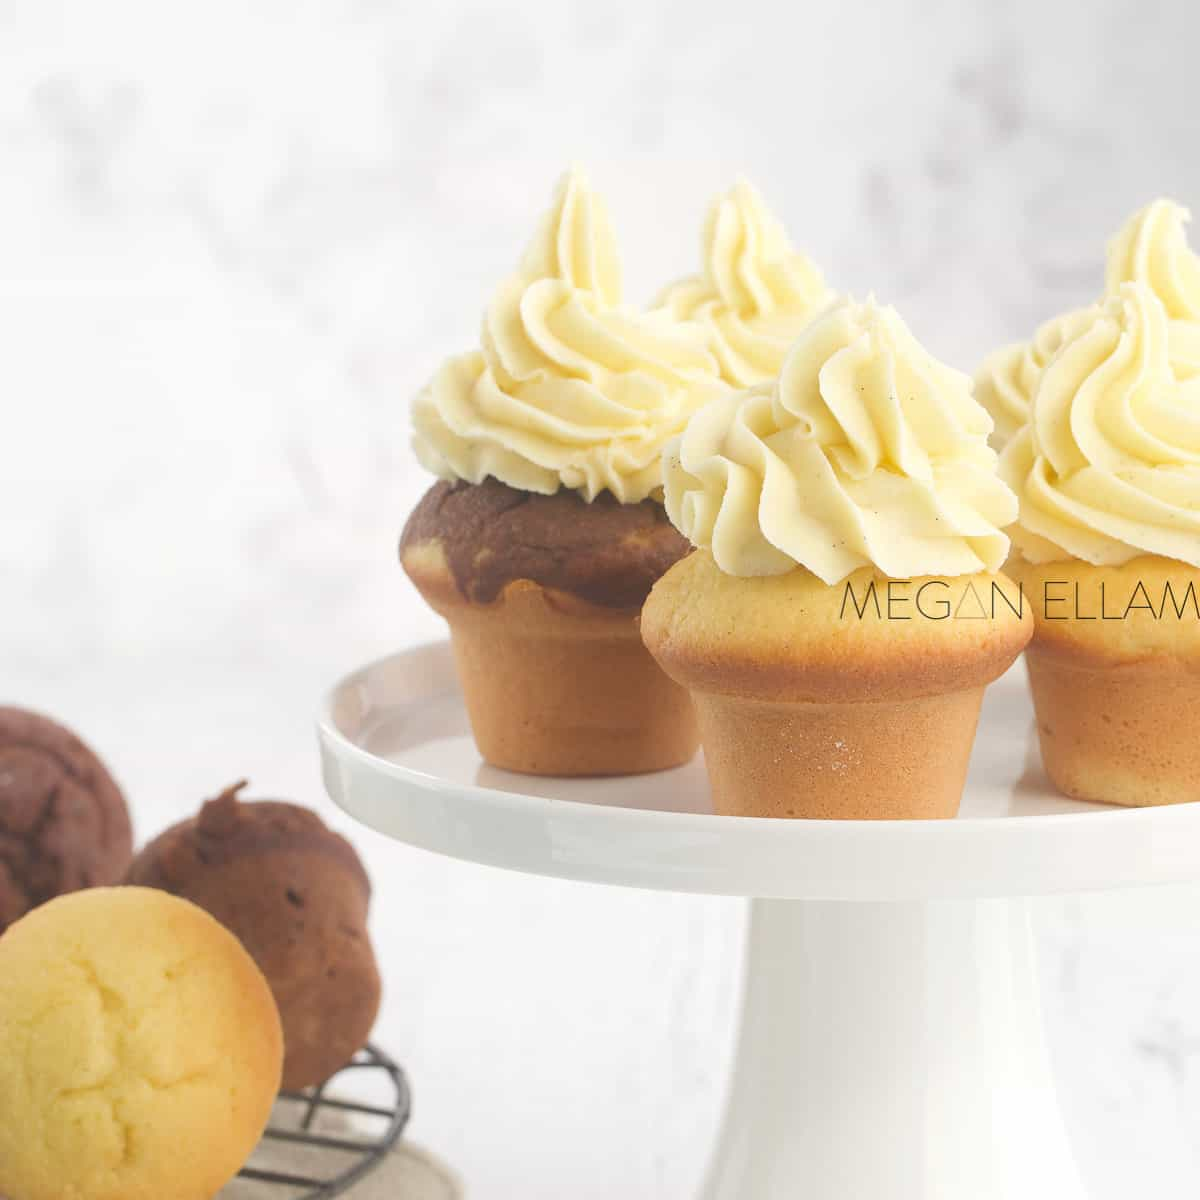 Keto cupcakes with vanilla frosting on a stand.